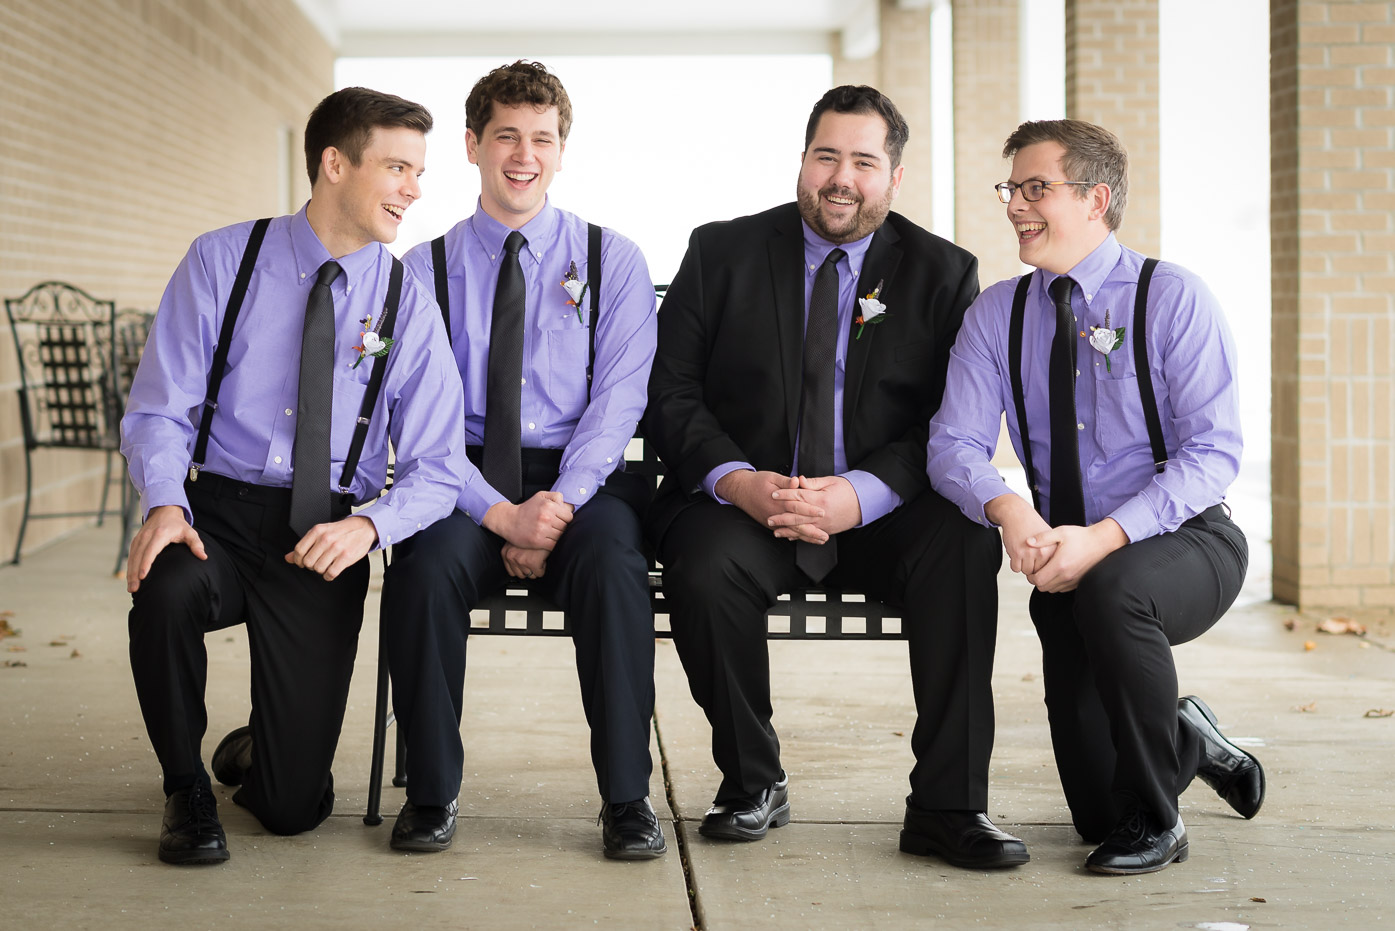 Groomsmen in Purple Shirts with Groom